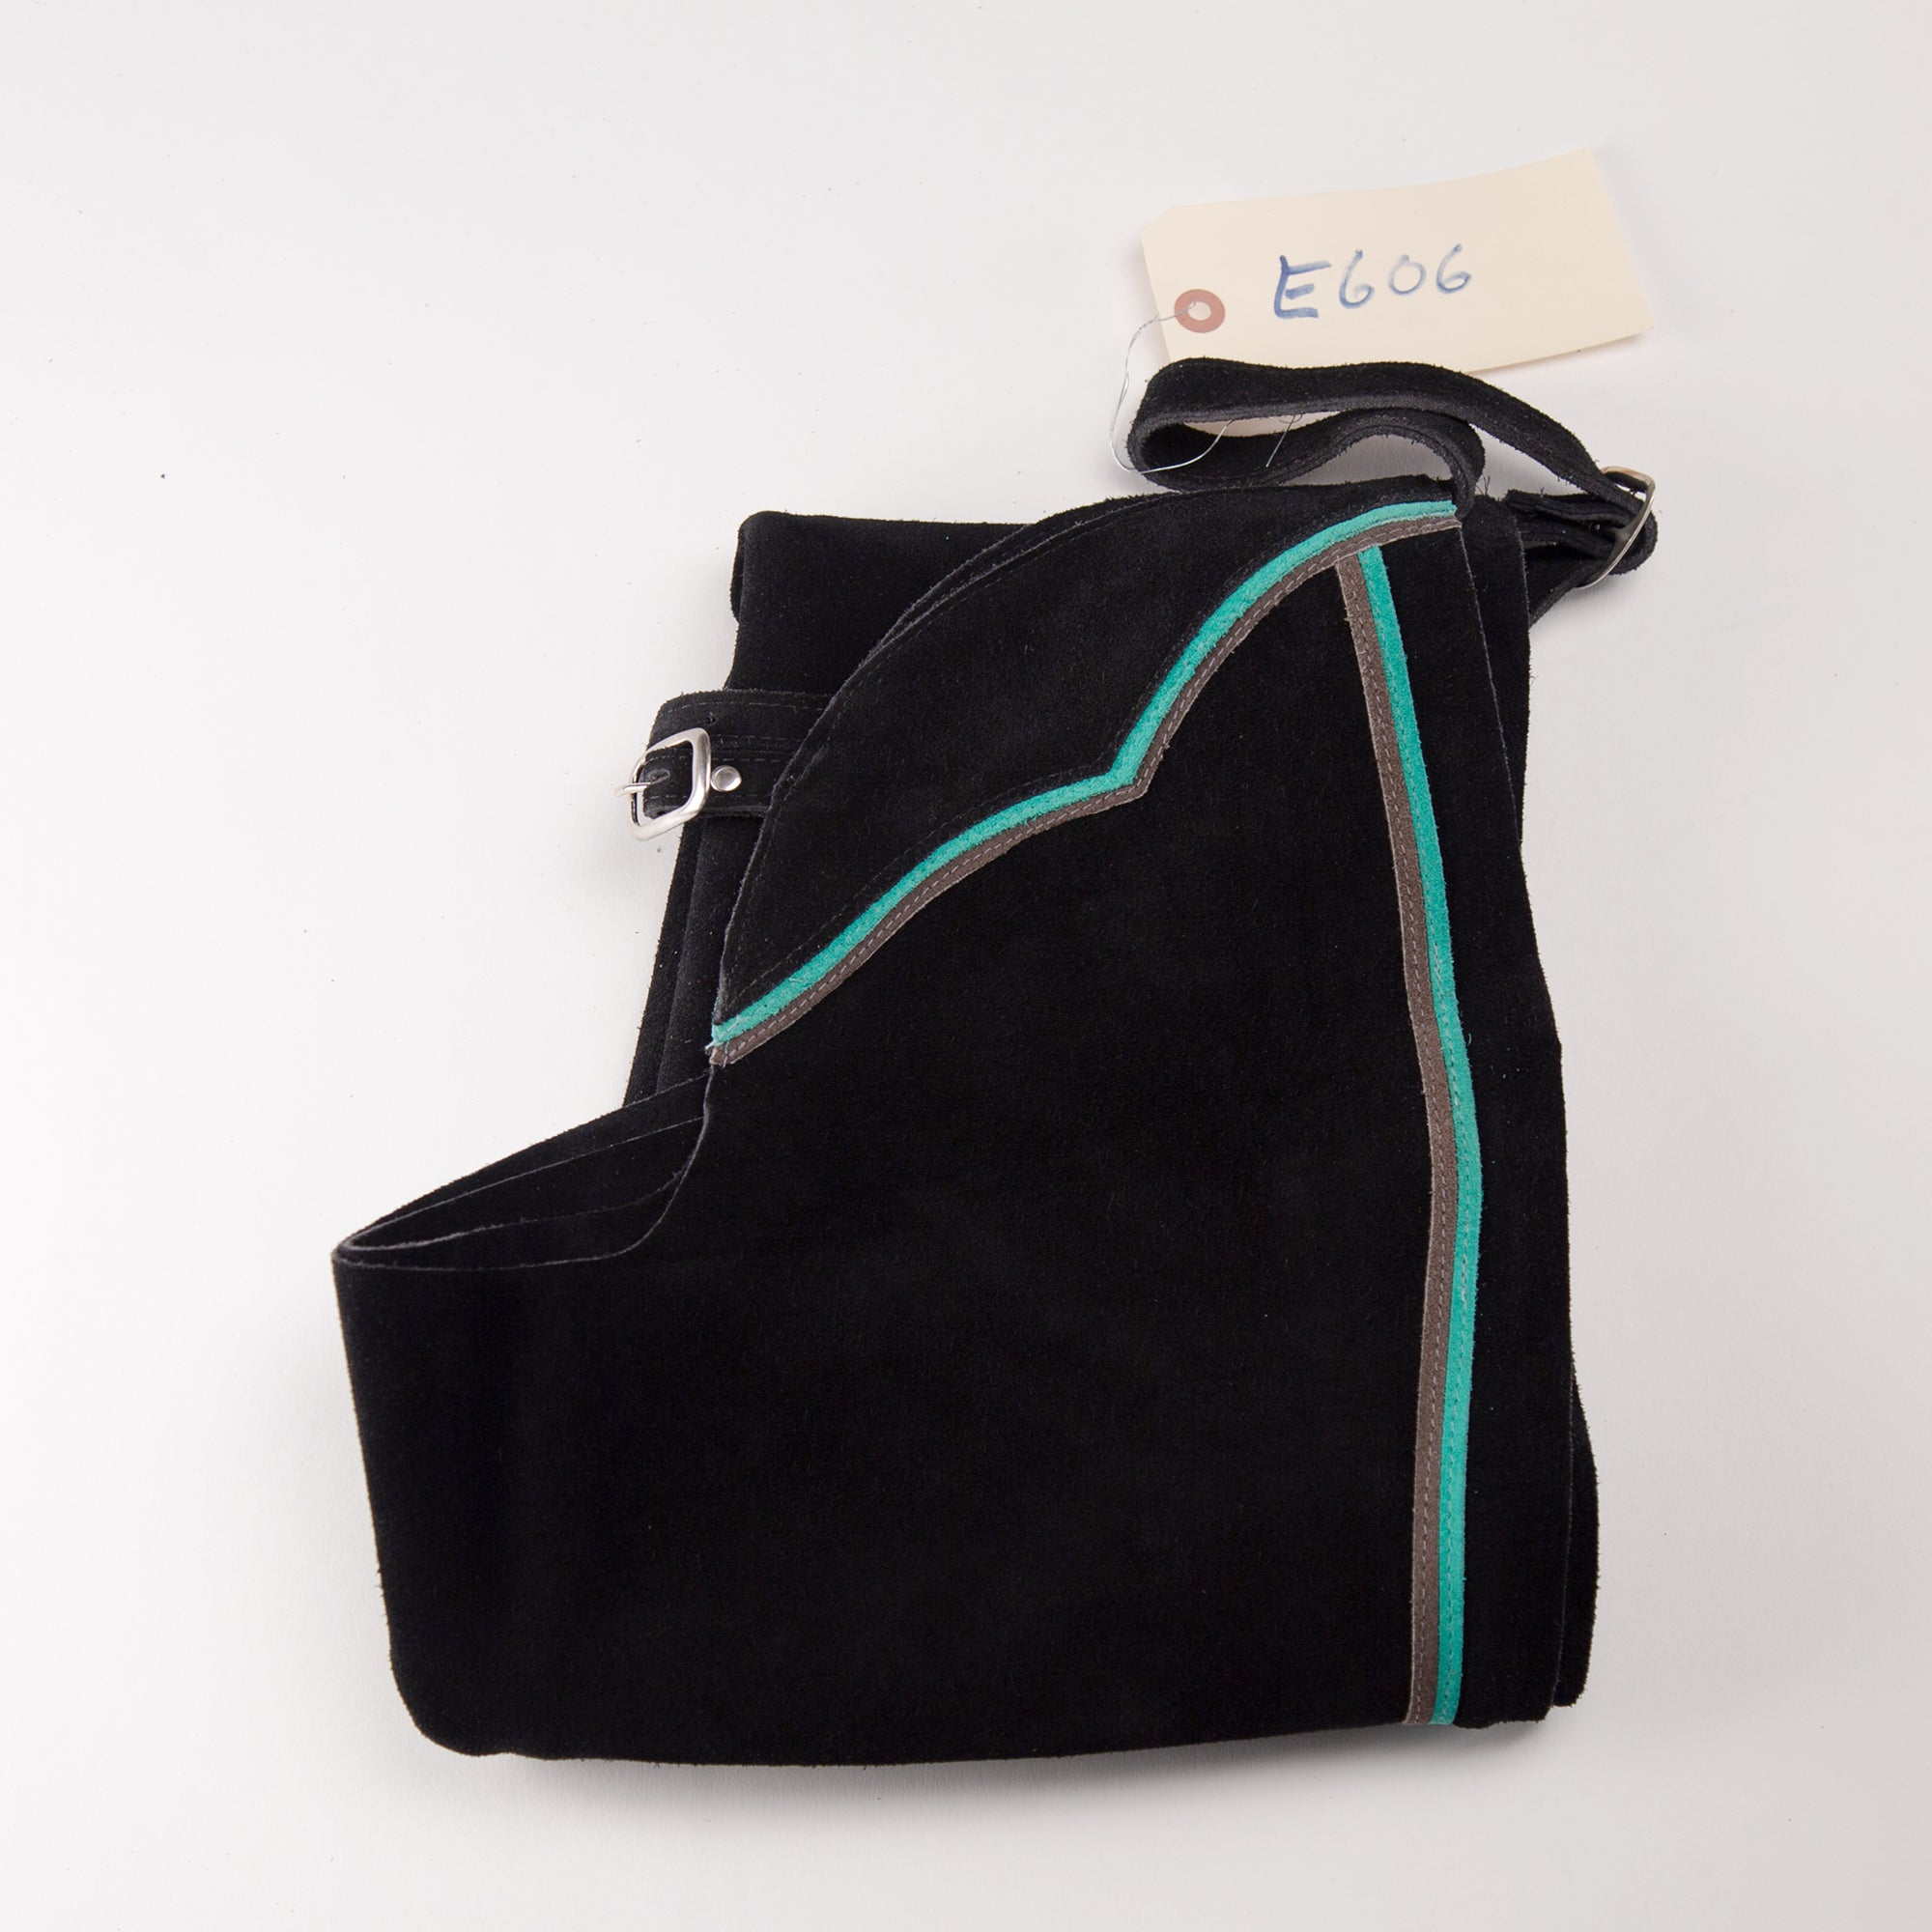 English Schooling Chaps - Black Suede - Teal and Grey Stripes